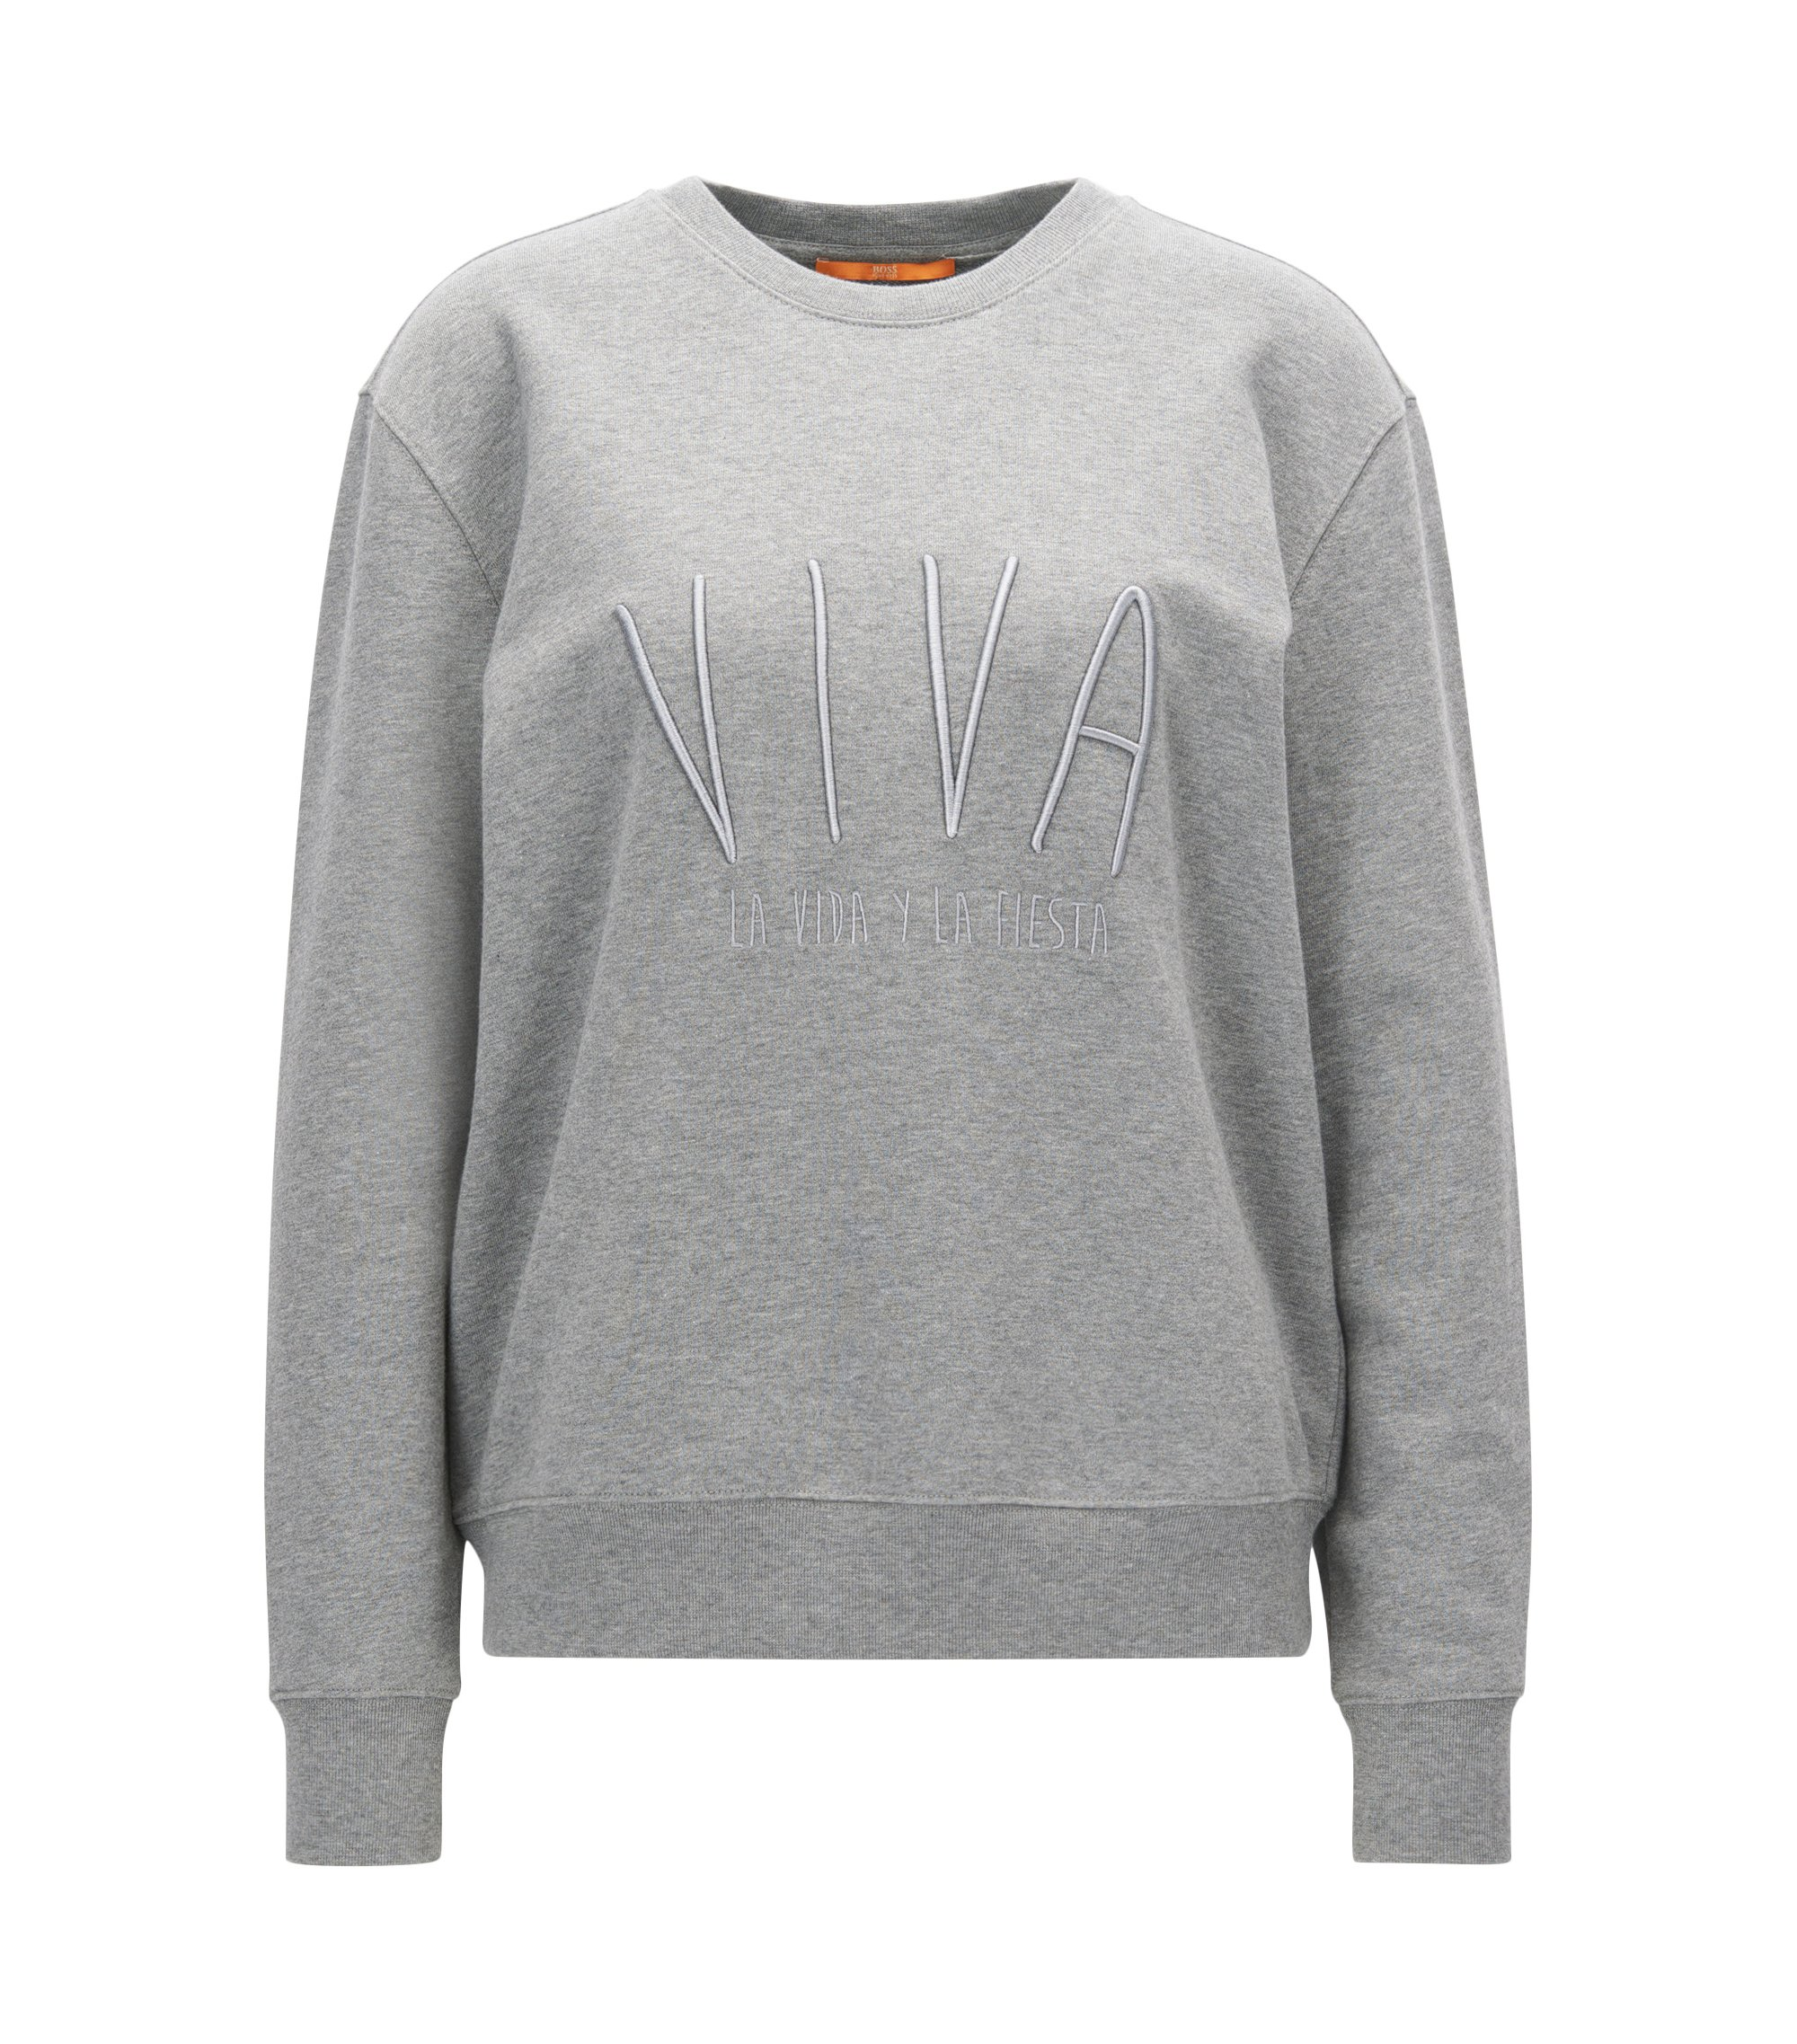 Cotton terry sweatshirt with embroidered slogan, Grey